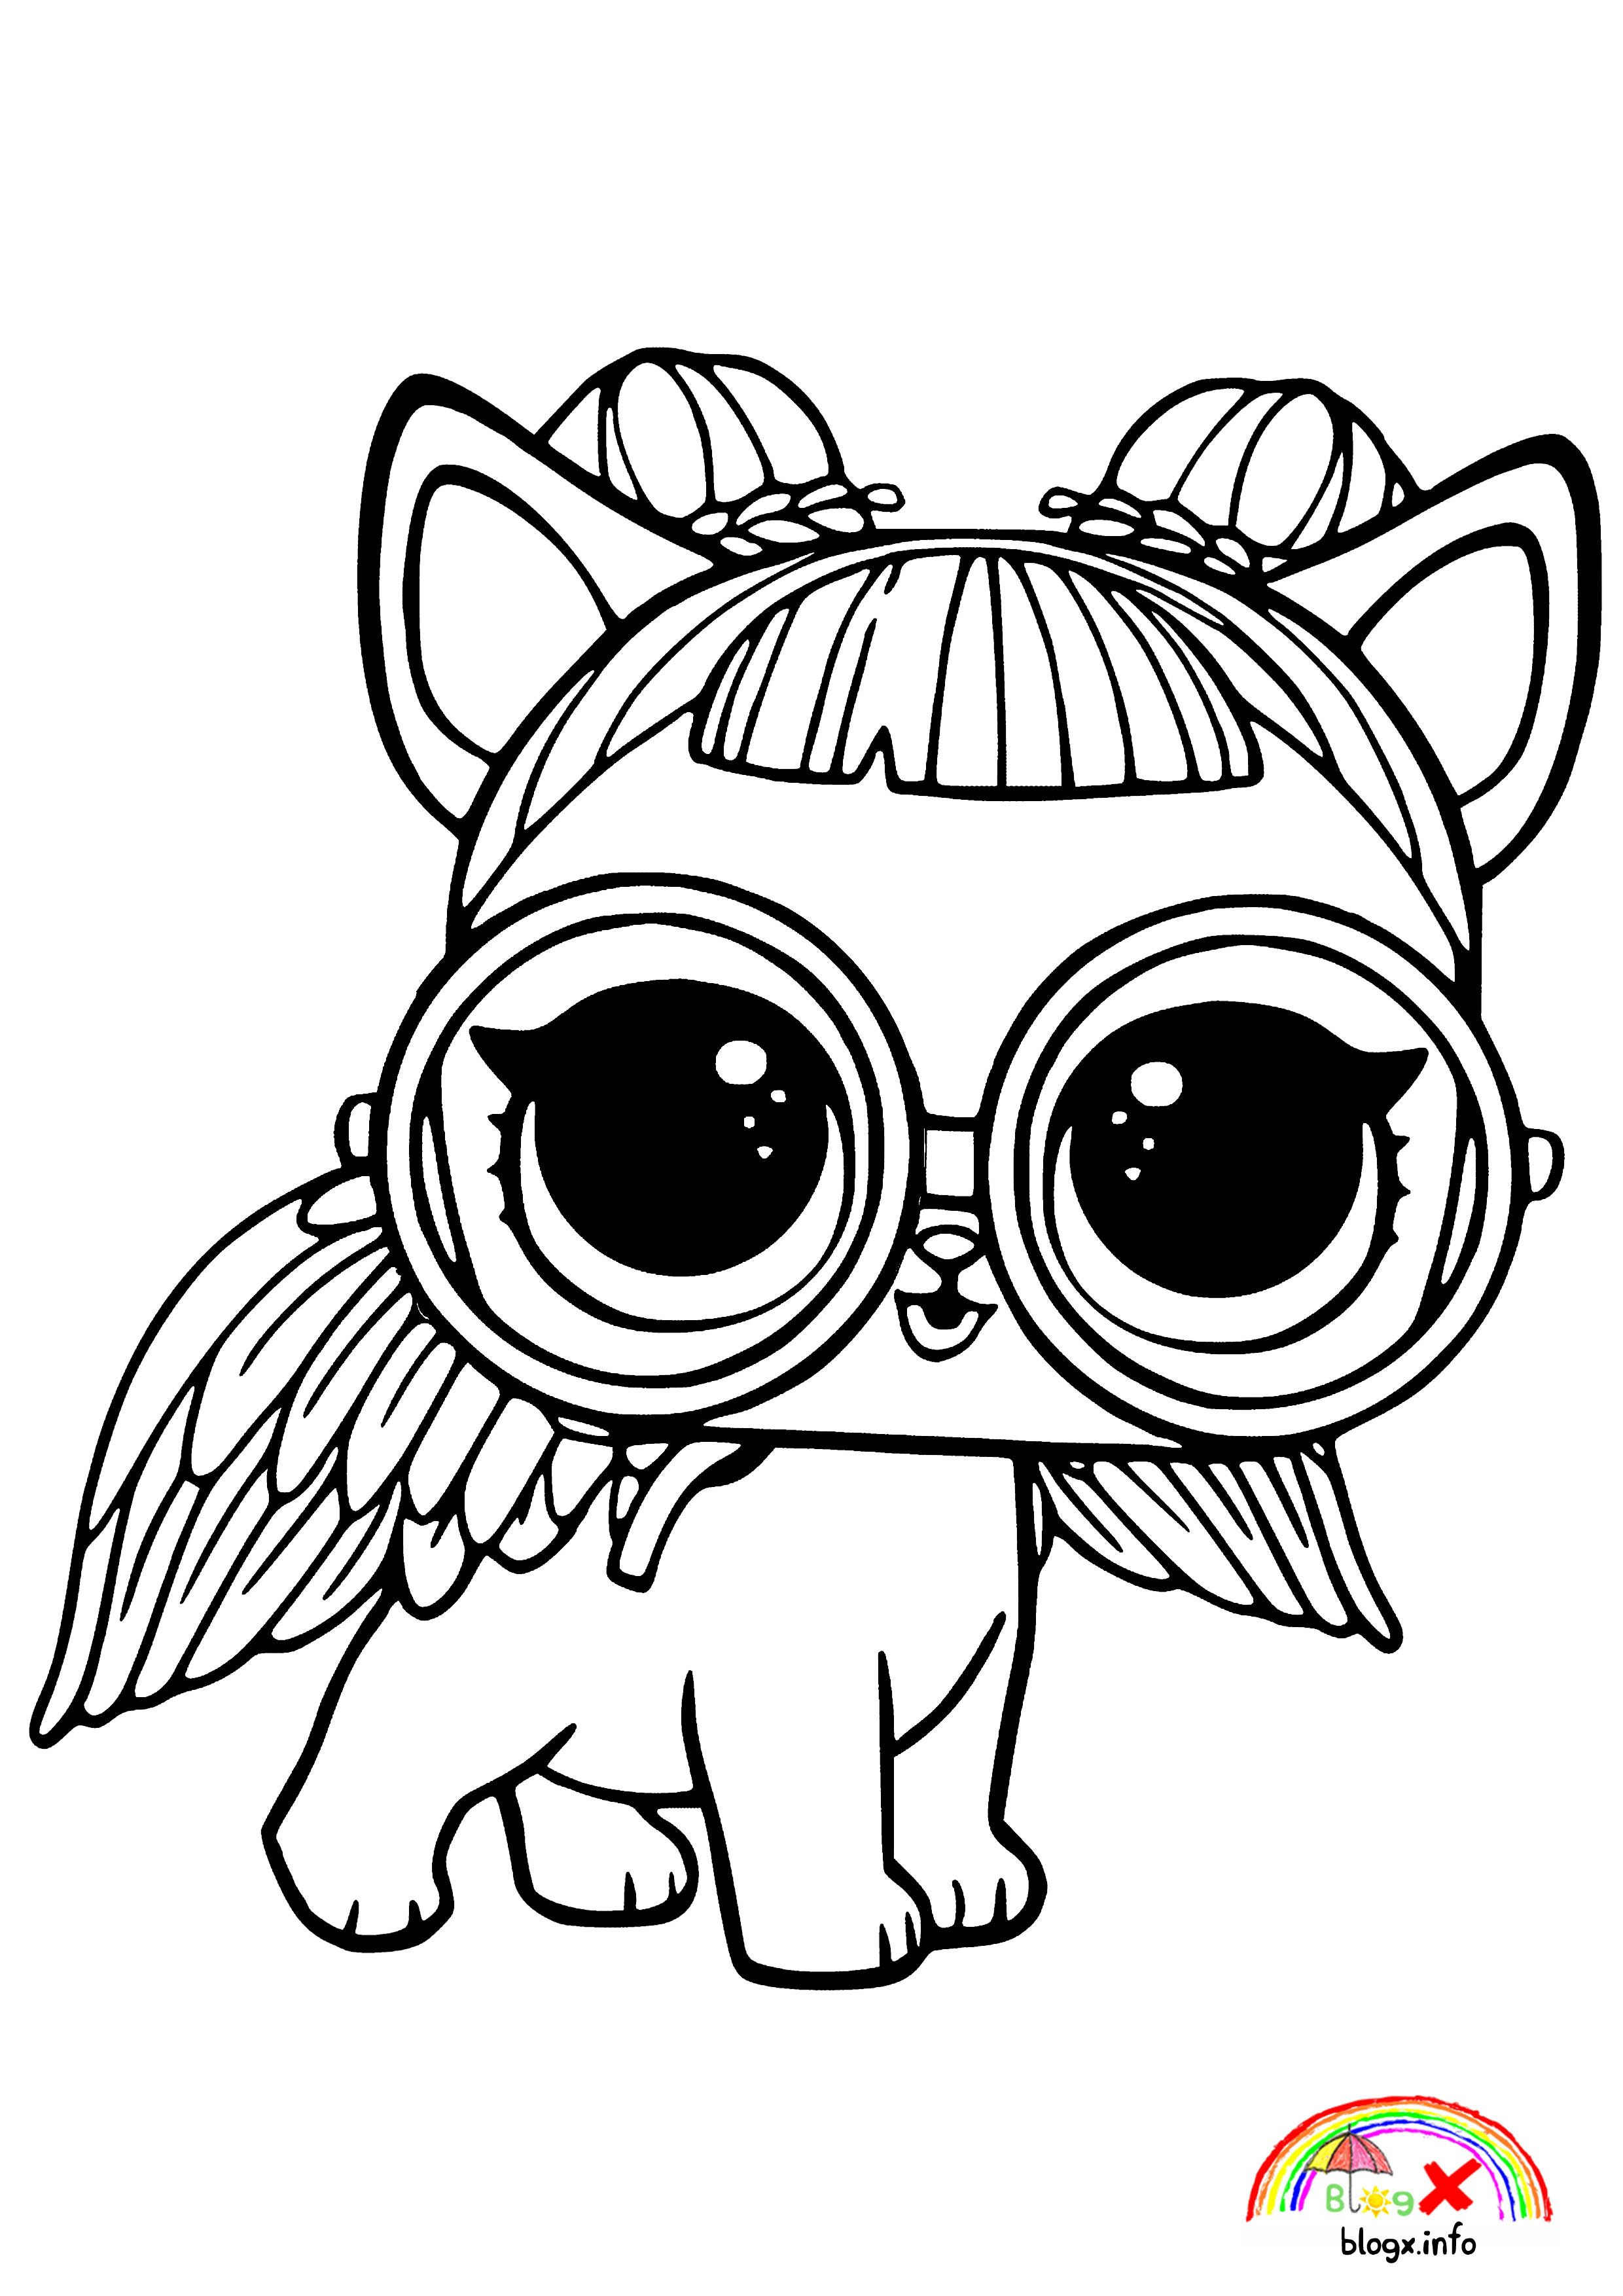 Cute Pet Lol Dolls Coloring Page | Unicorn coloring pages ...